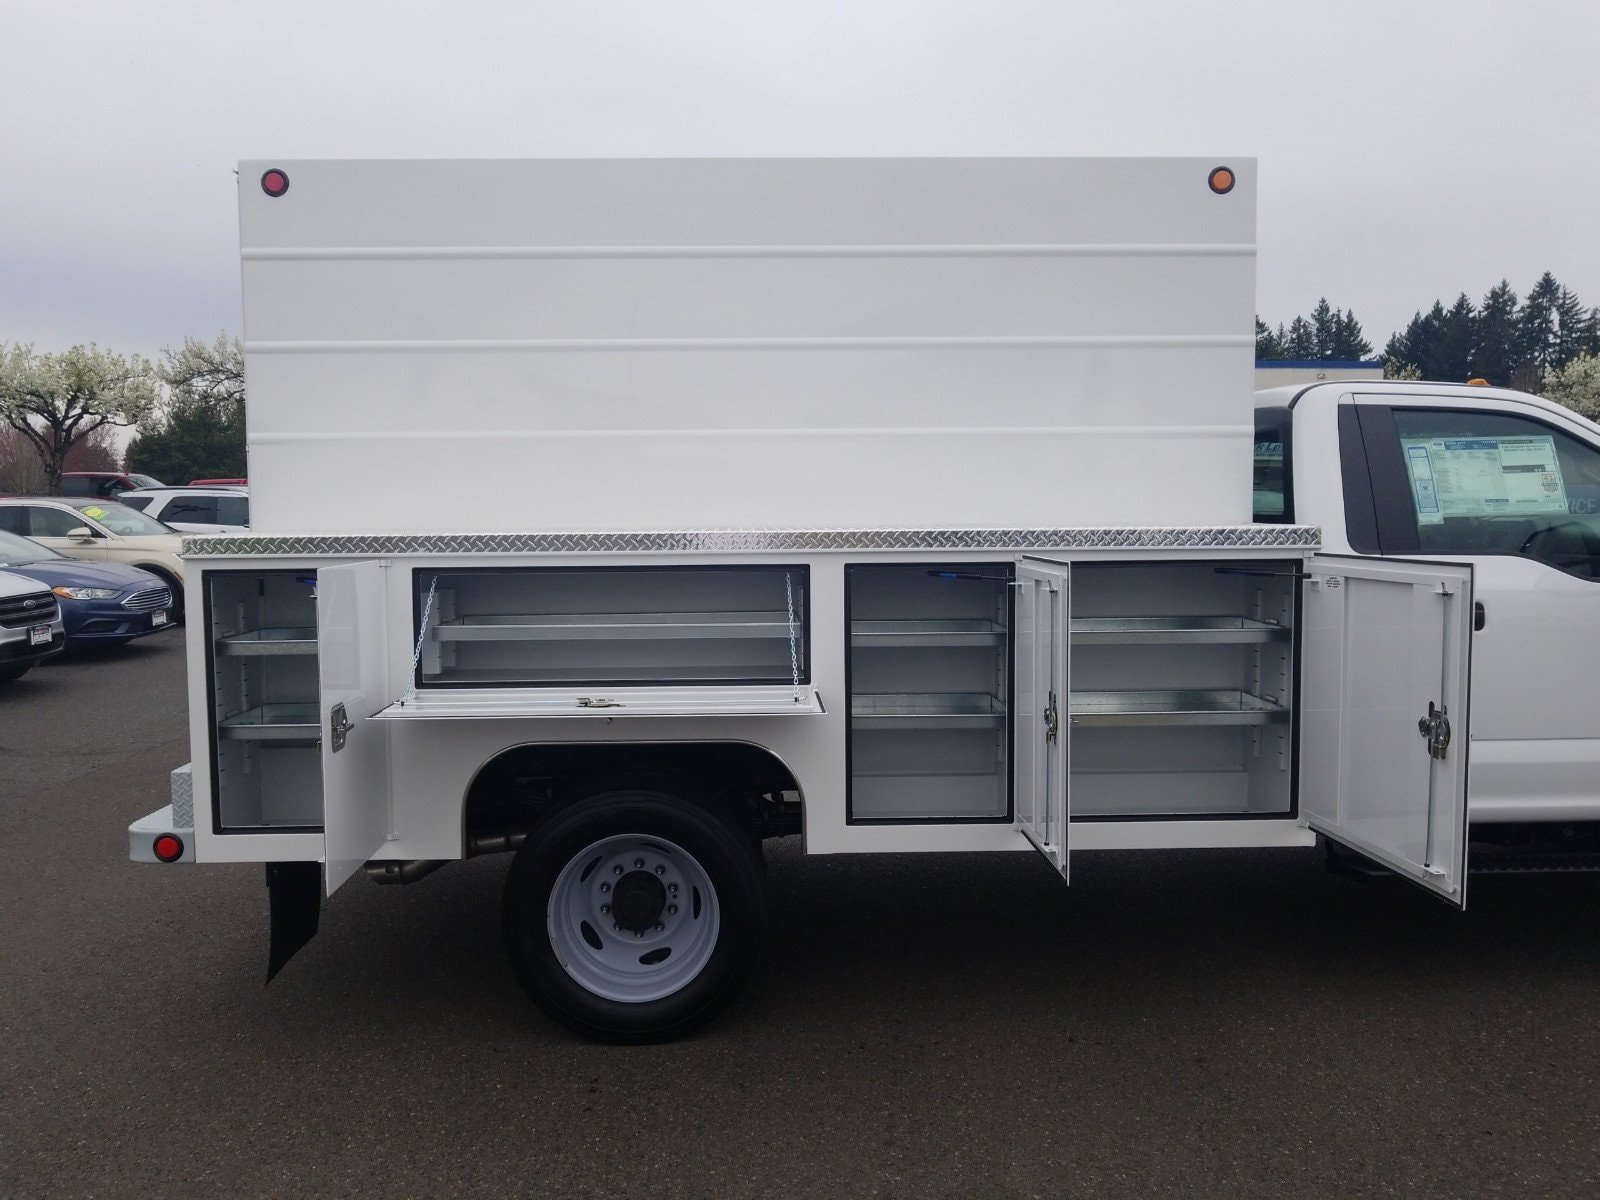 2019 F-550 Regular Cab DRW 4x2, Scelzi Service Body #299674 - photo 1